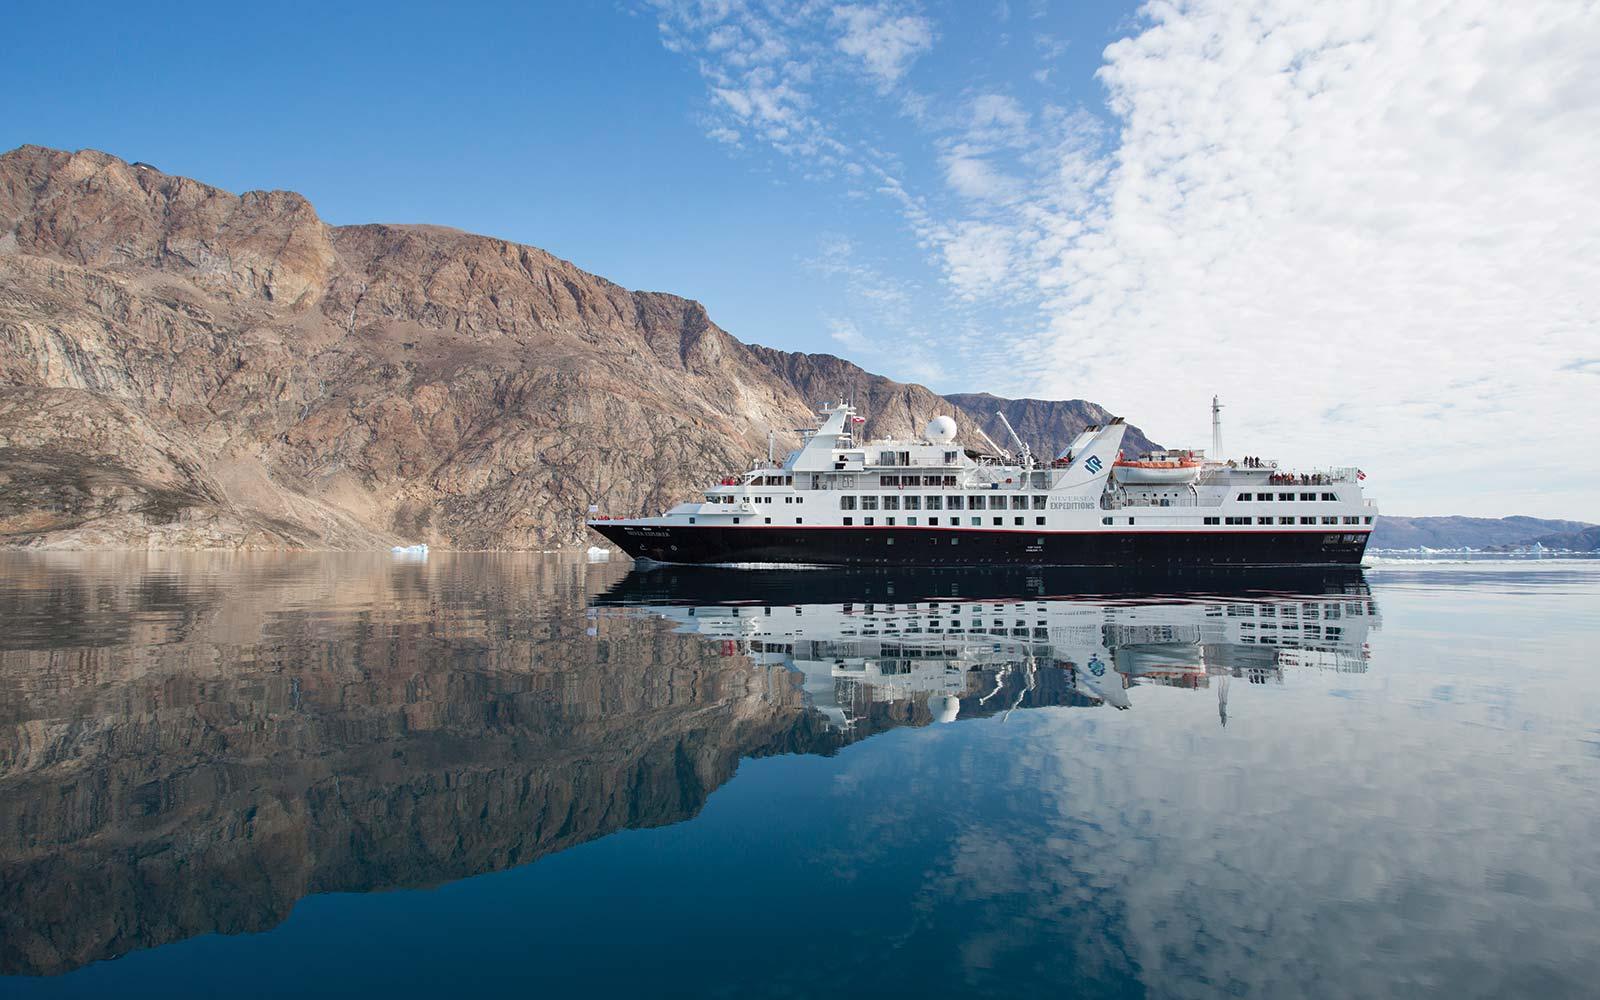 Five Things to Know About Silversea's Silver Explorer Cruise Ship